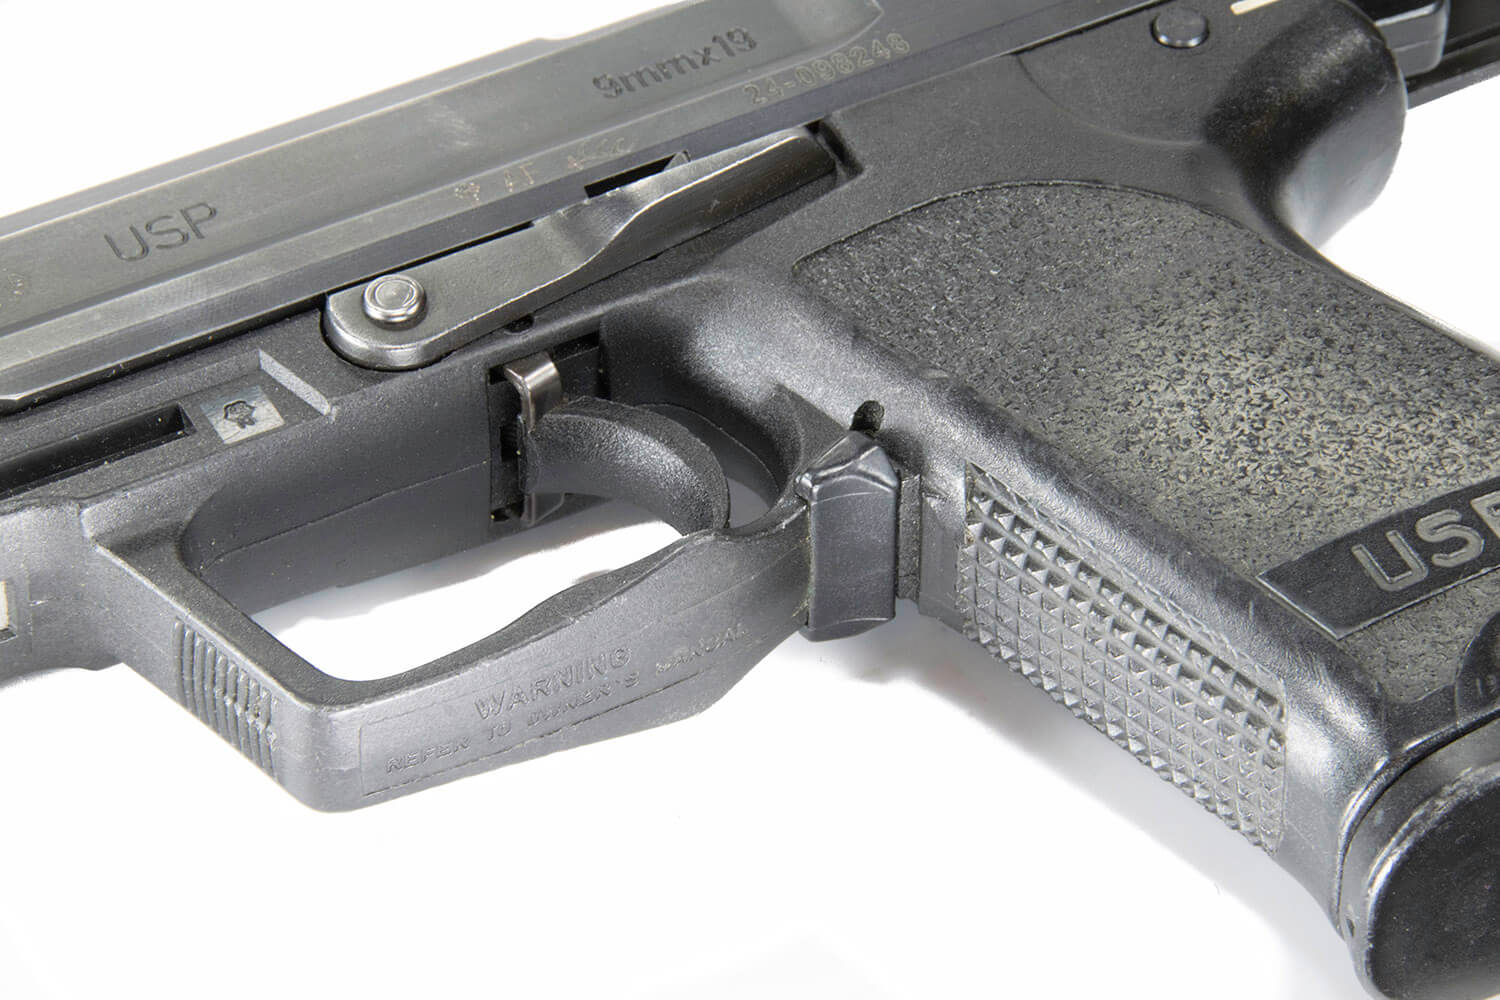 USP Paddle Release